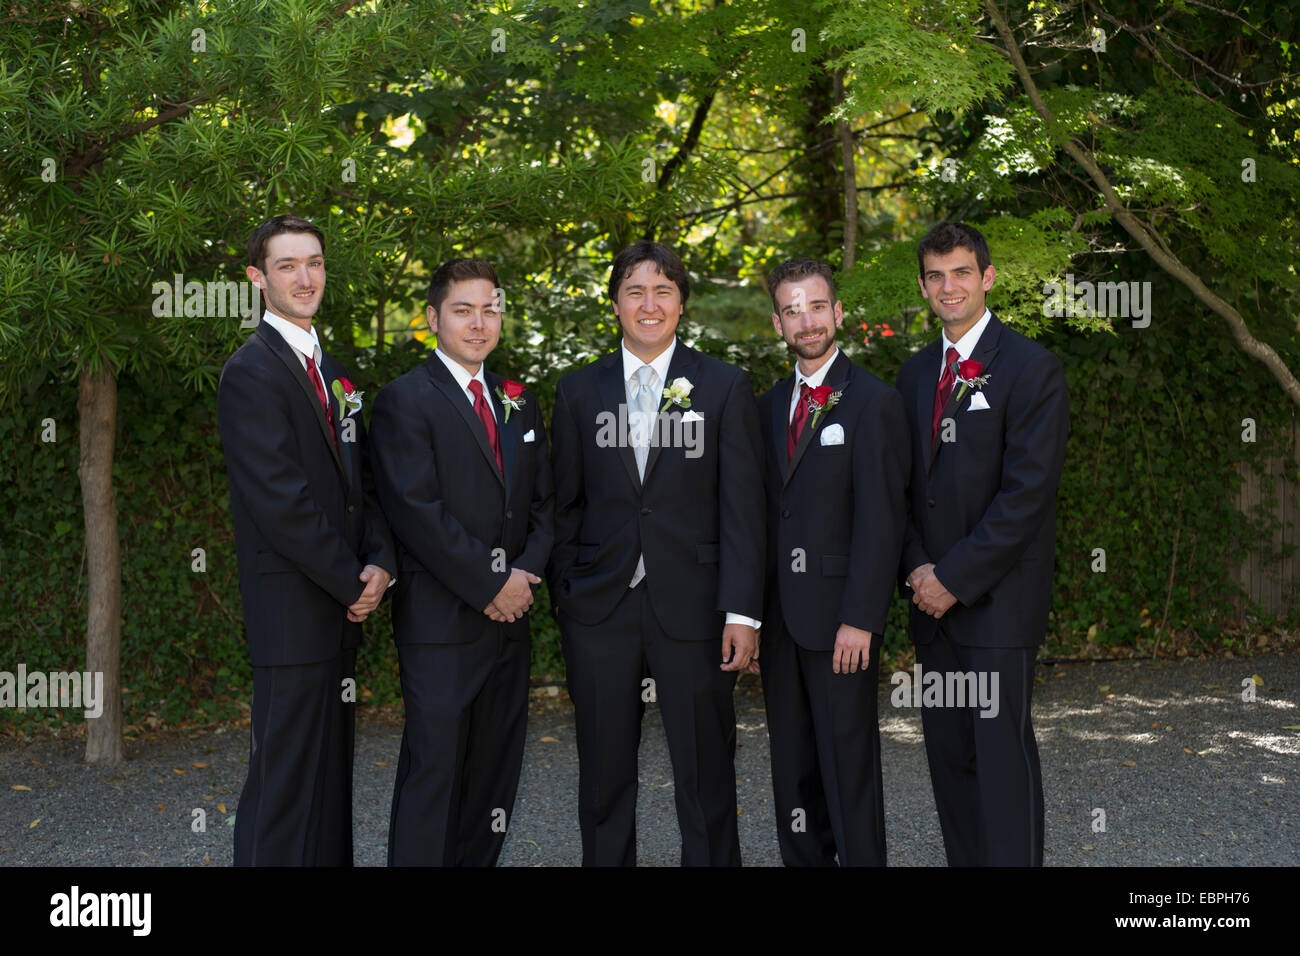 groom and groomsmen wedding attendants wedding party at wedding at the Marin Art and Garden Center in the city of - Stock Image